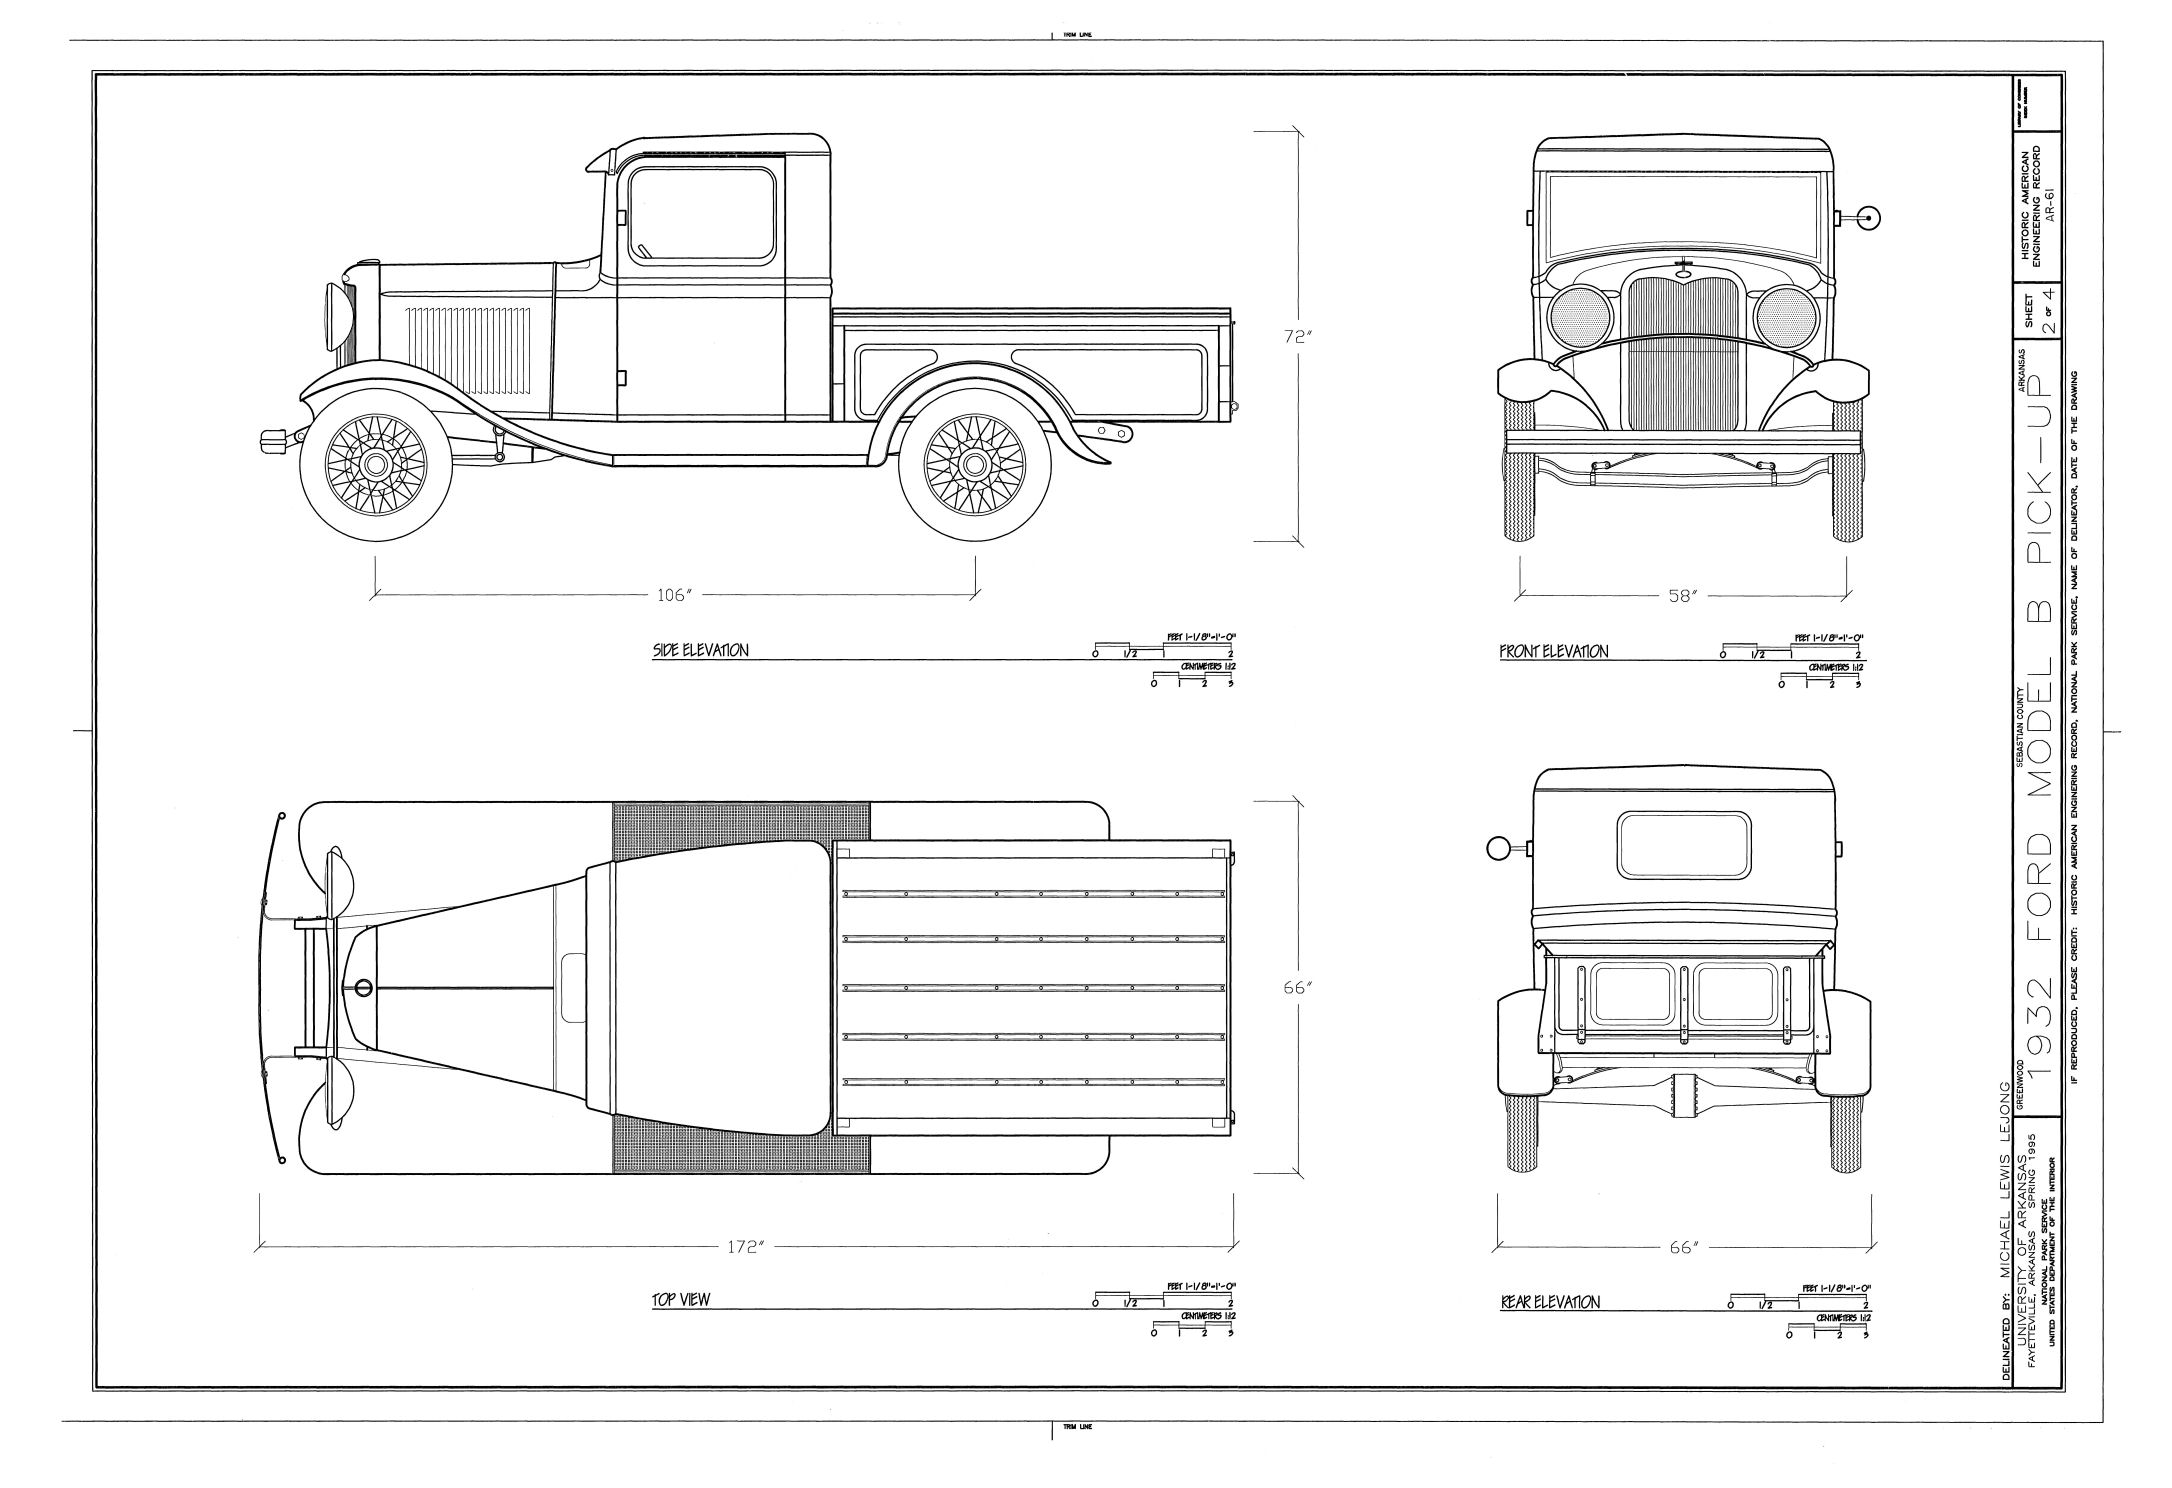 1951 ford f1 race truck